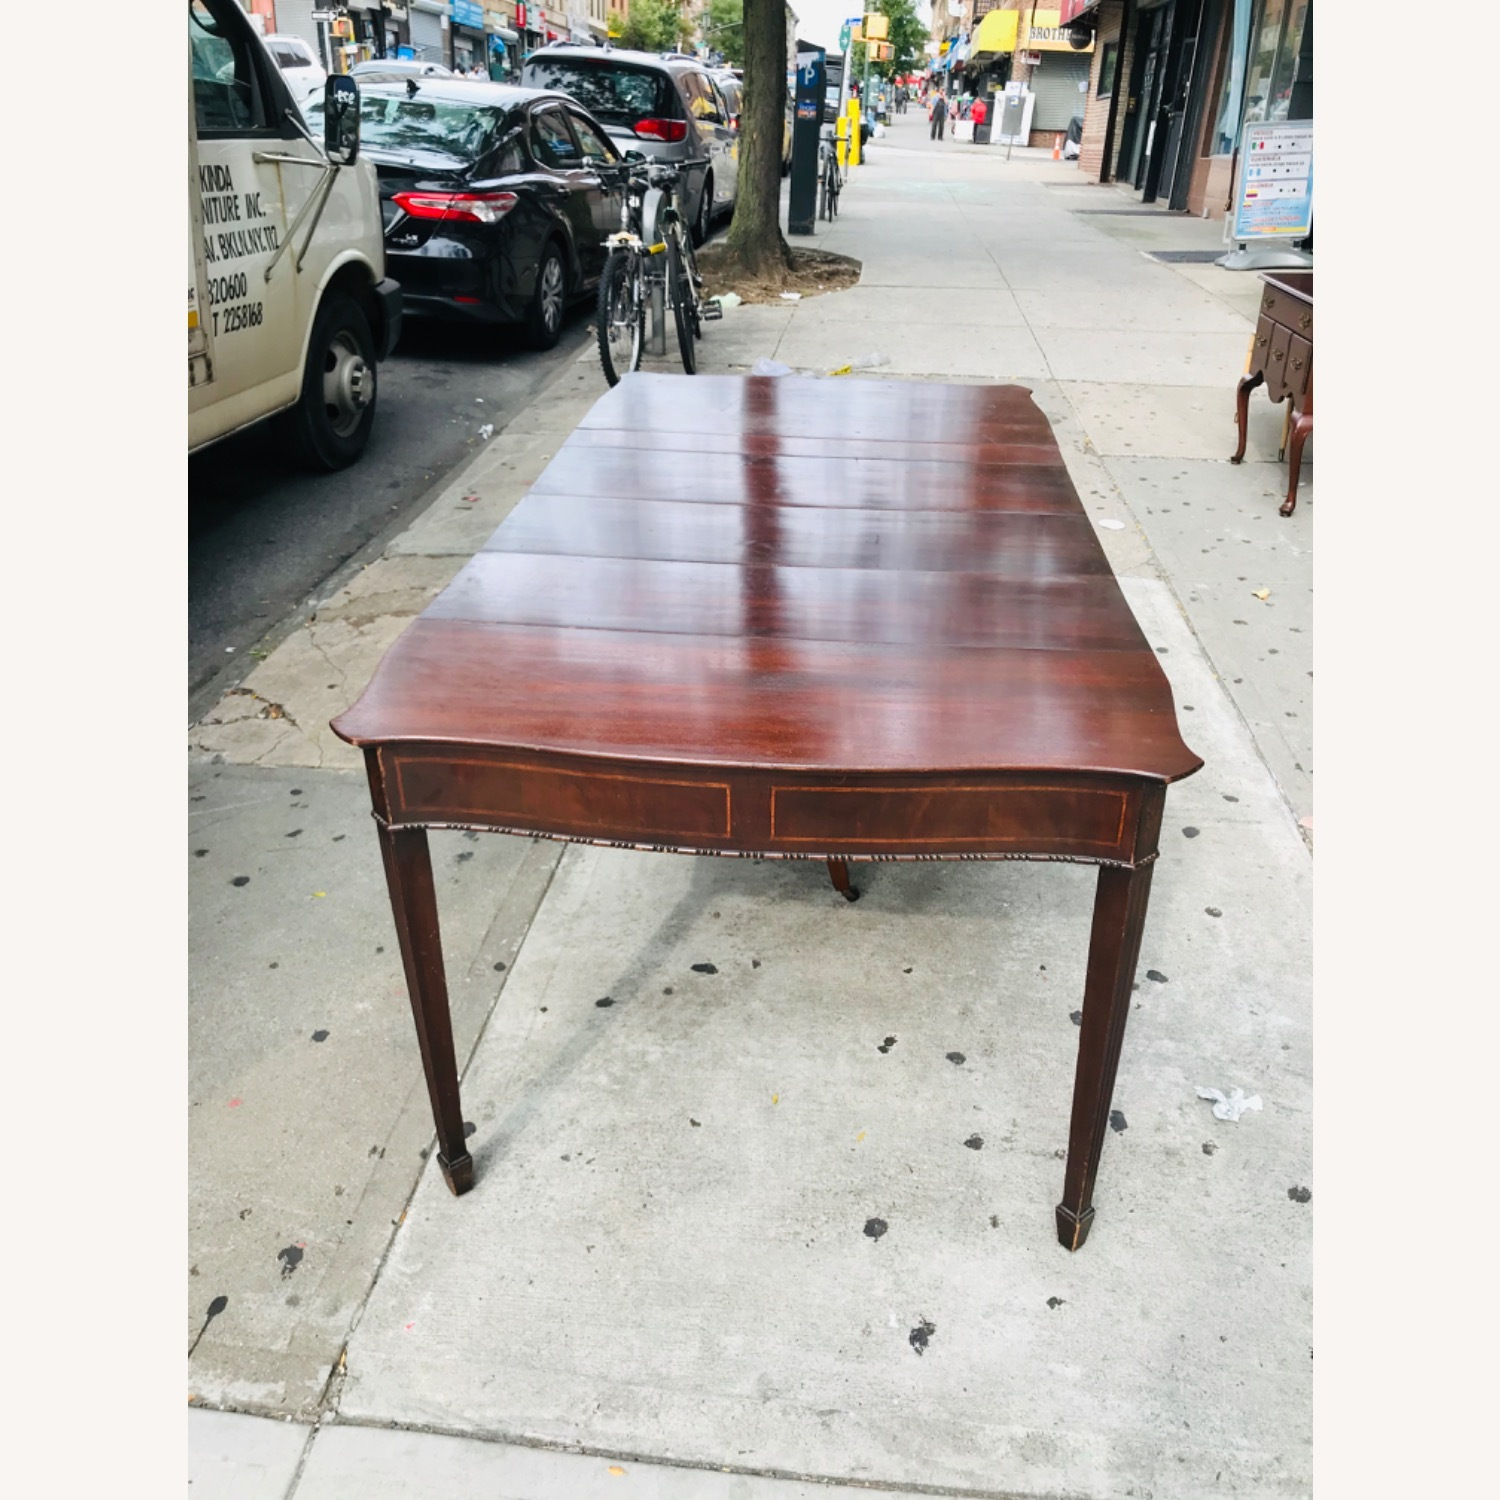 Antique 1920s Mahogany Table w/3 Leaves  - image-19